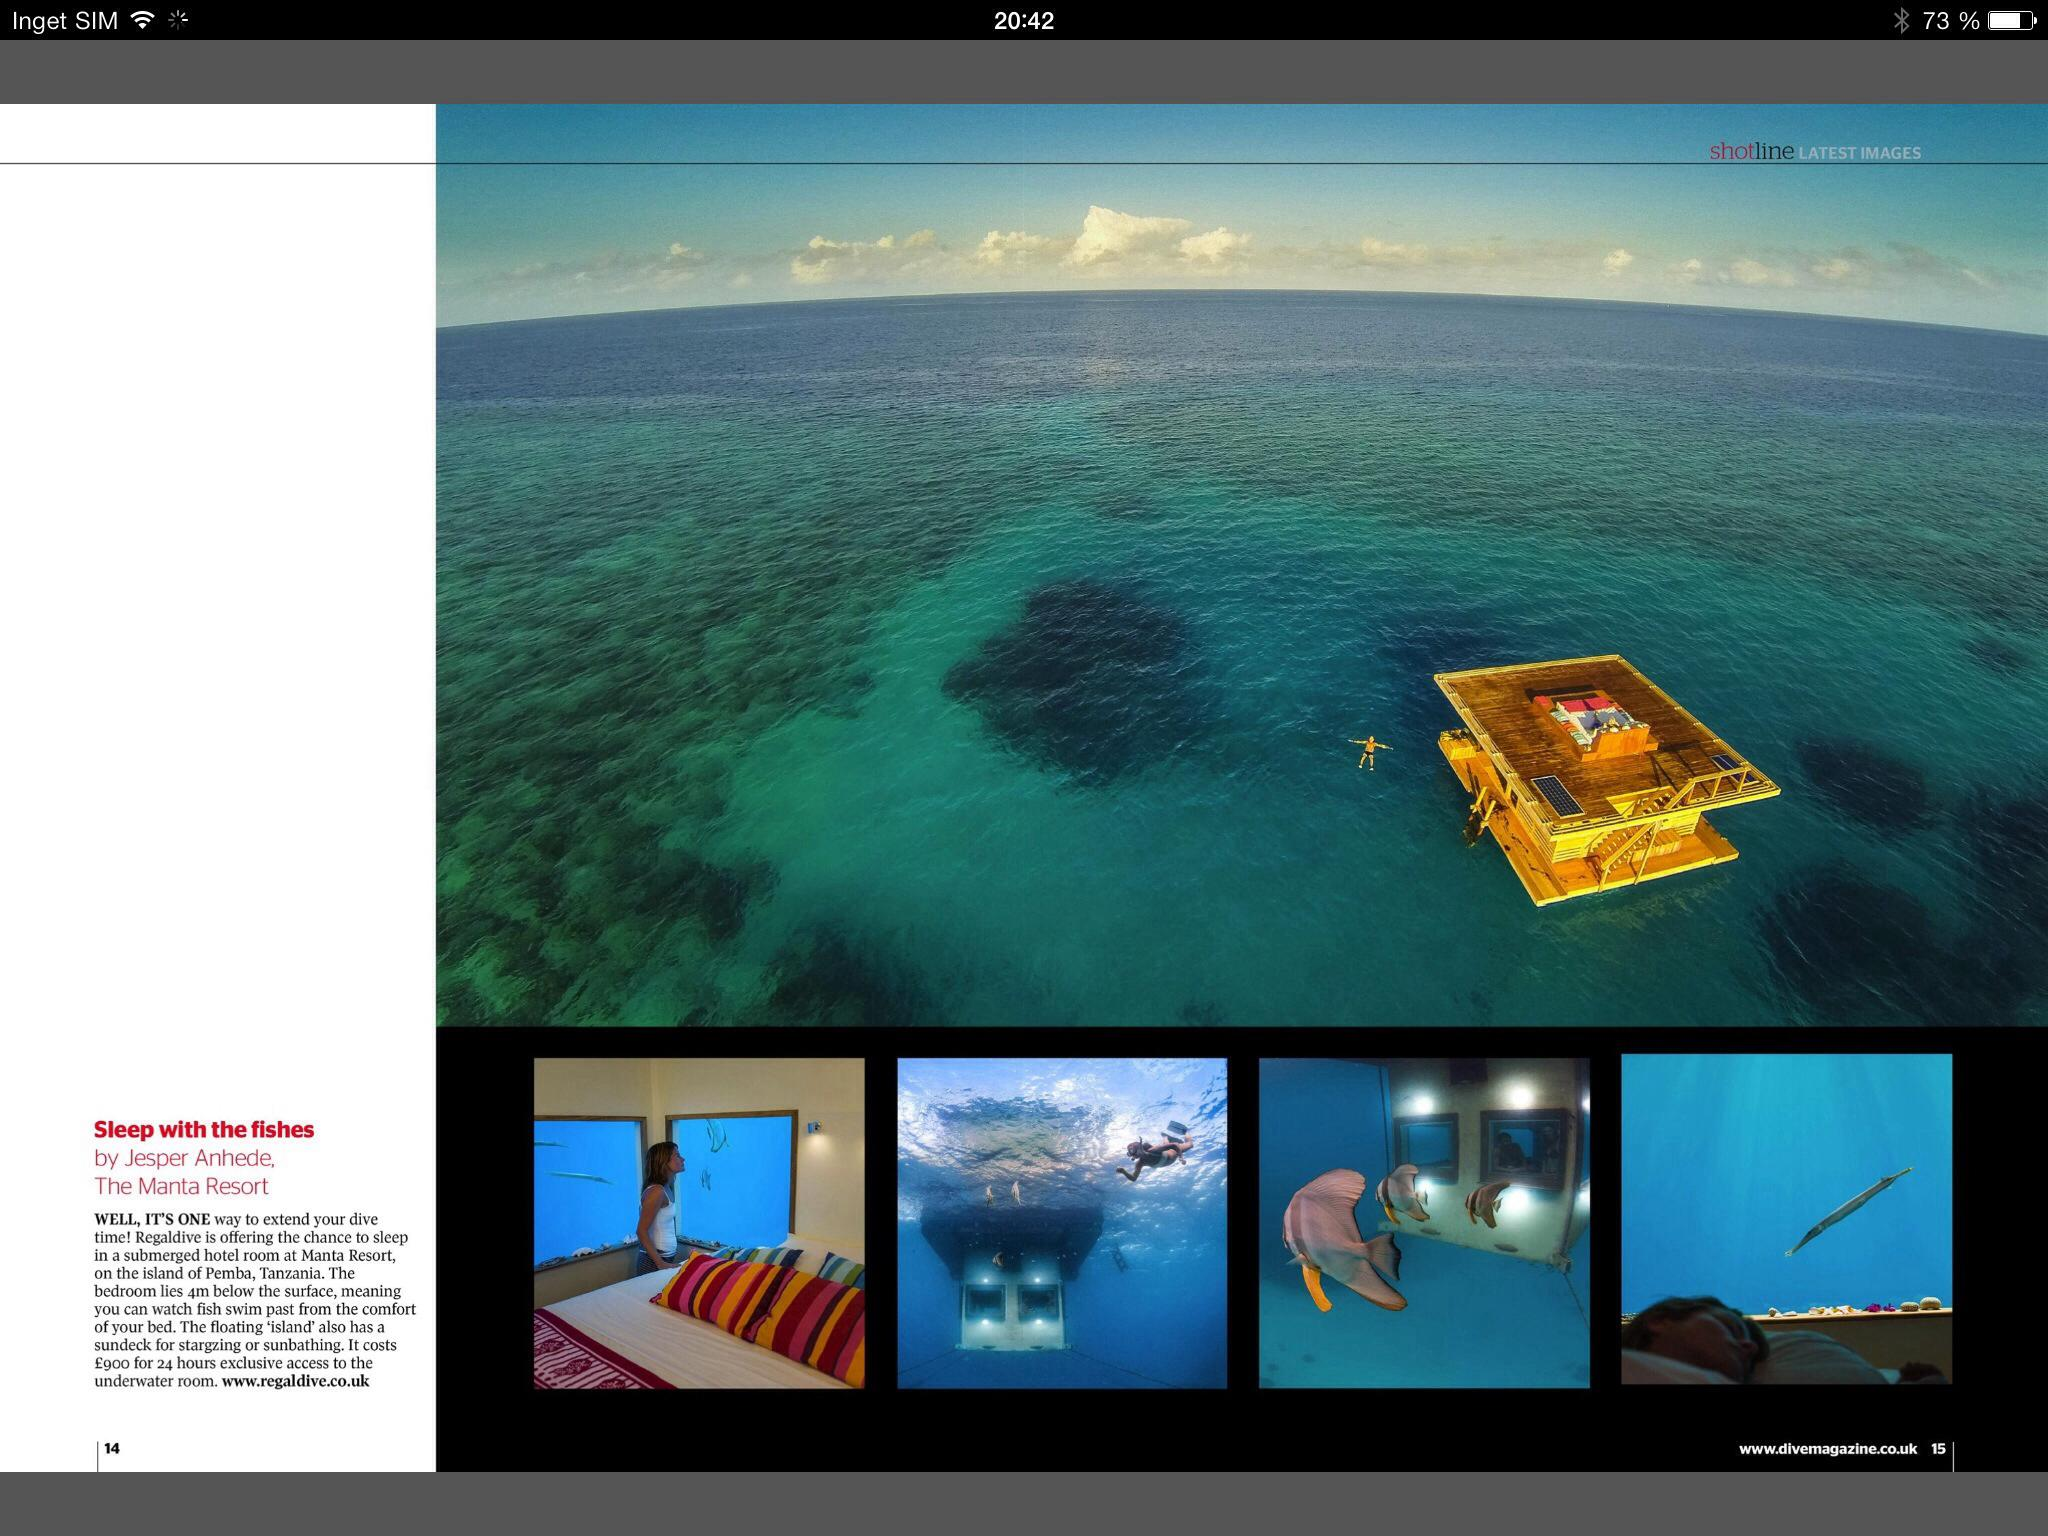 Underwater photographer for Dive magazine - Undervattensfotograf för tidningen Dive